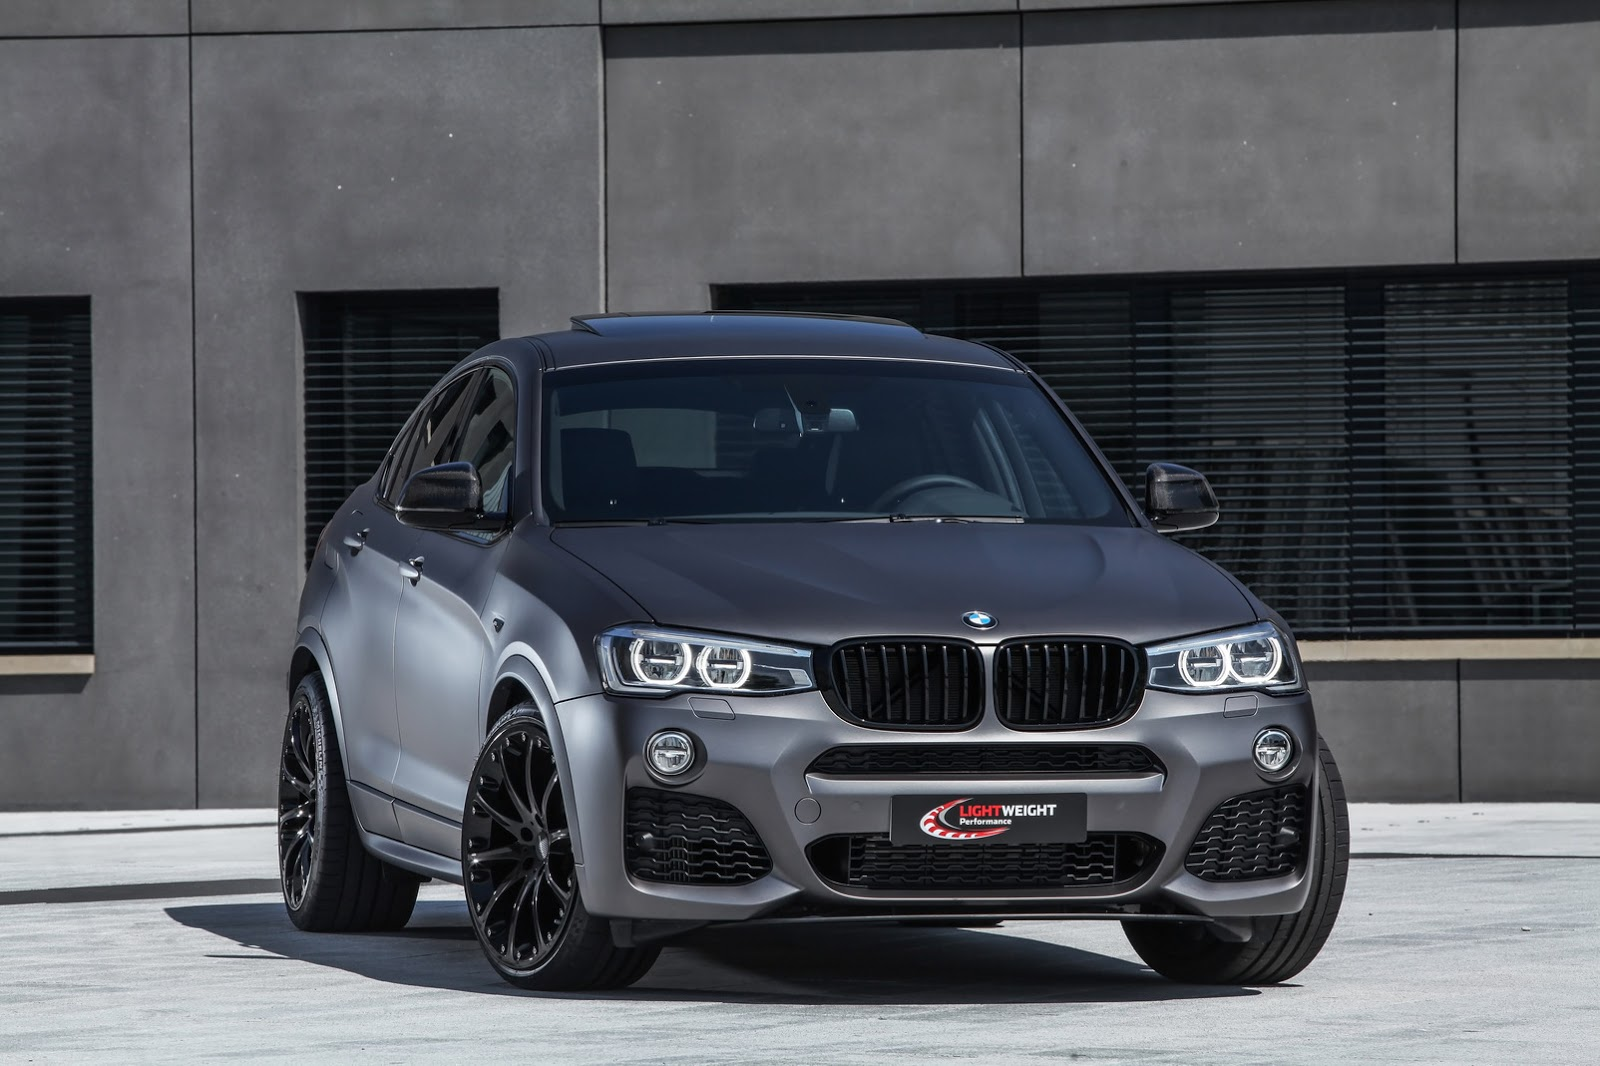 lightweight 39 s 39 stealthy 39 bmw x4 has up to 370hp carscoops. Black Bedroom Furniture Sets. Home Design Ideas